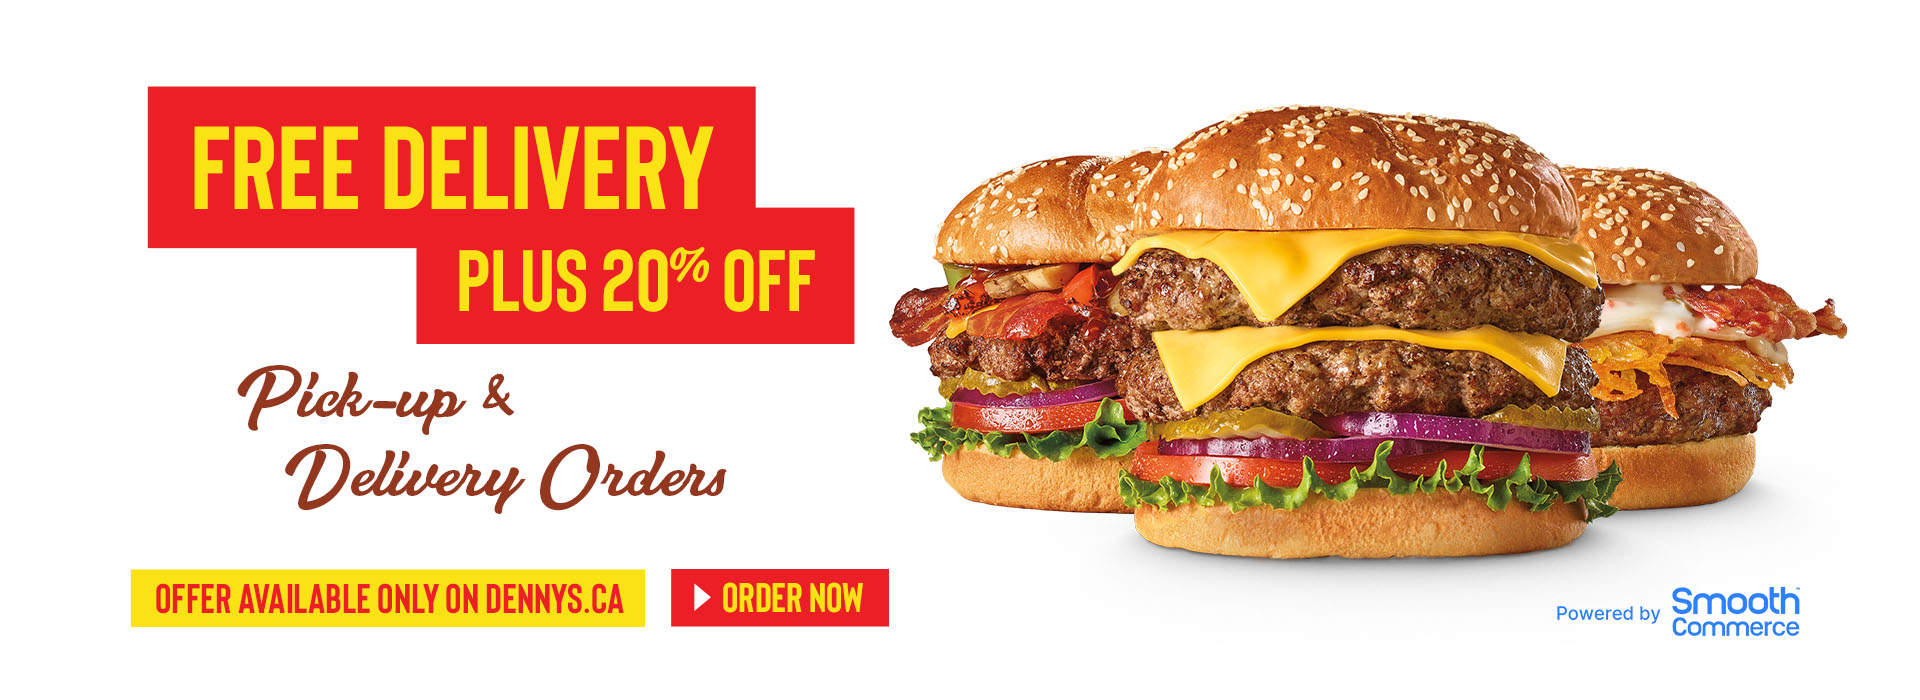 Denny's Canada launches a new model of delivery and ordering powered by Smooth Commerce and DoorDash Drive During Wake of Pandemic